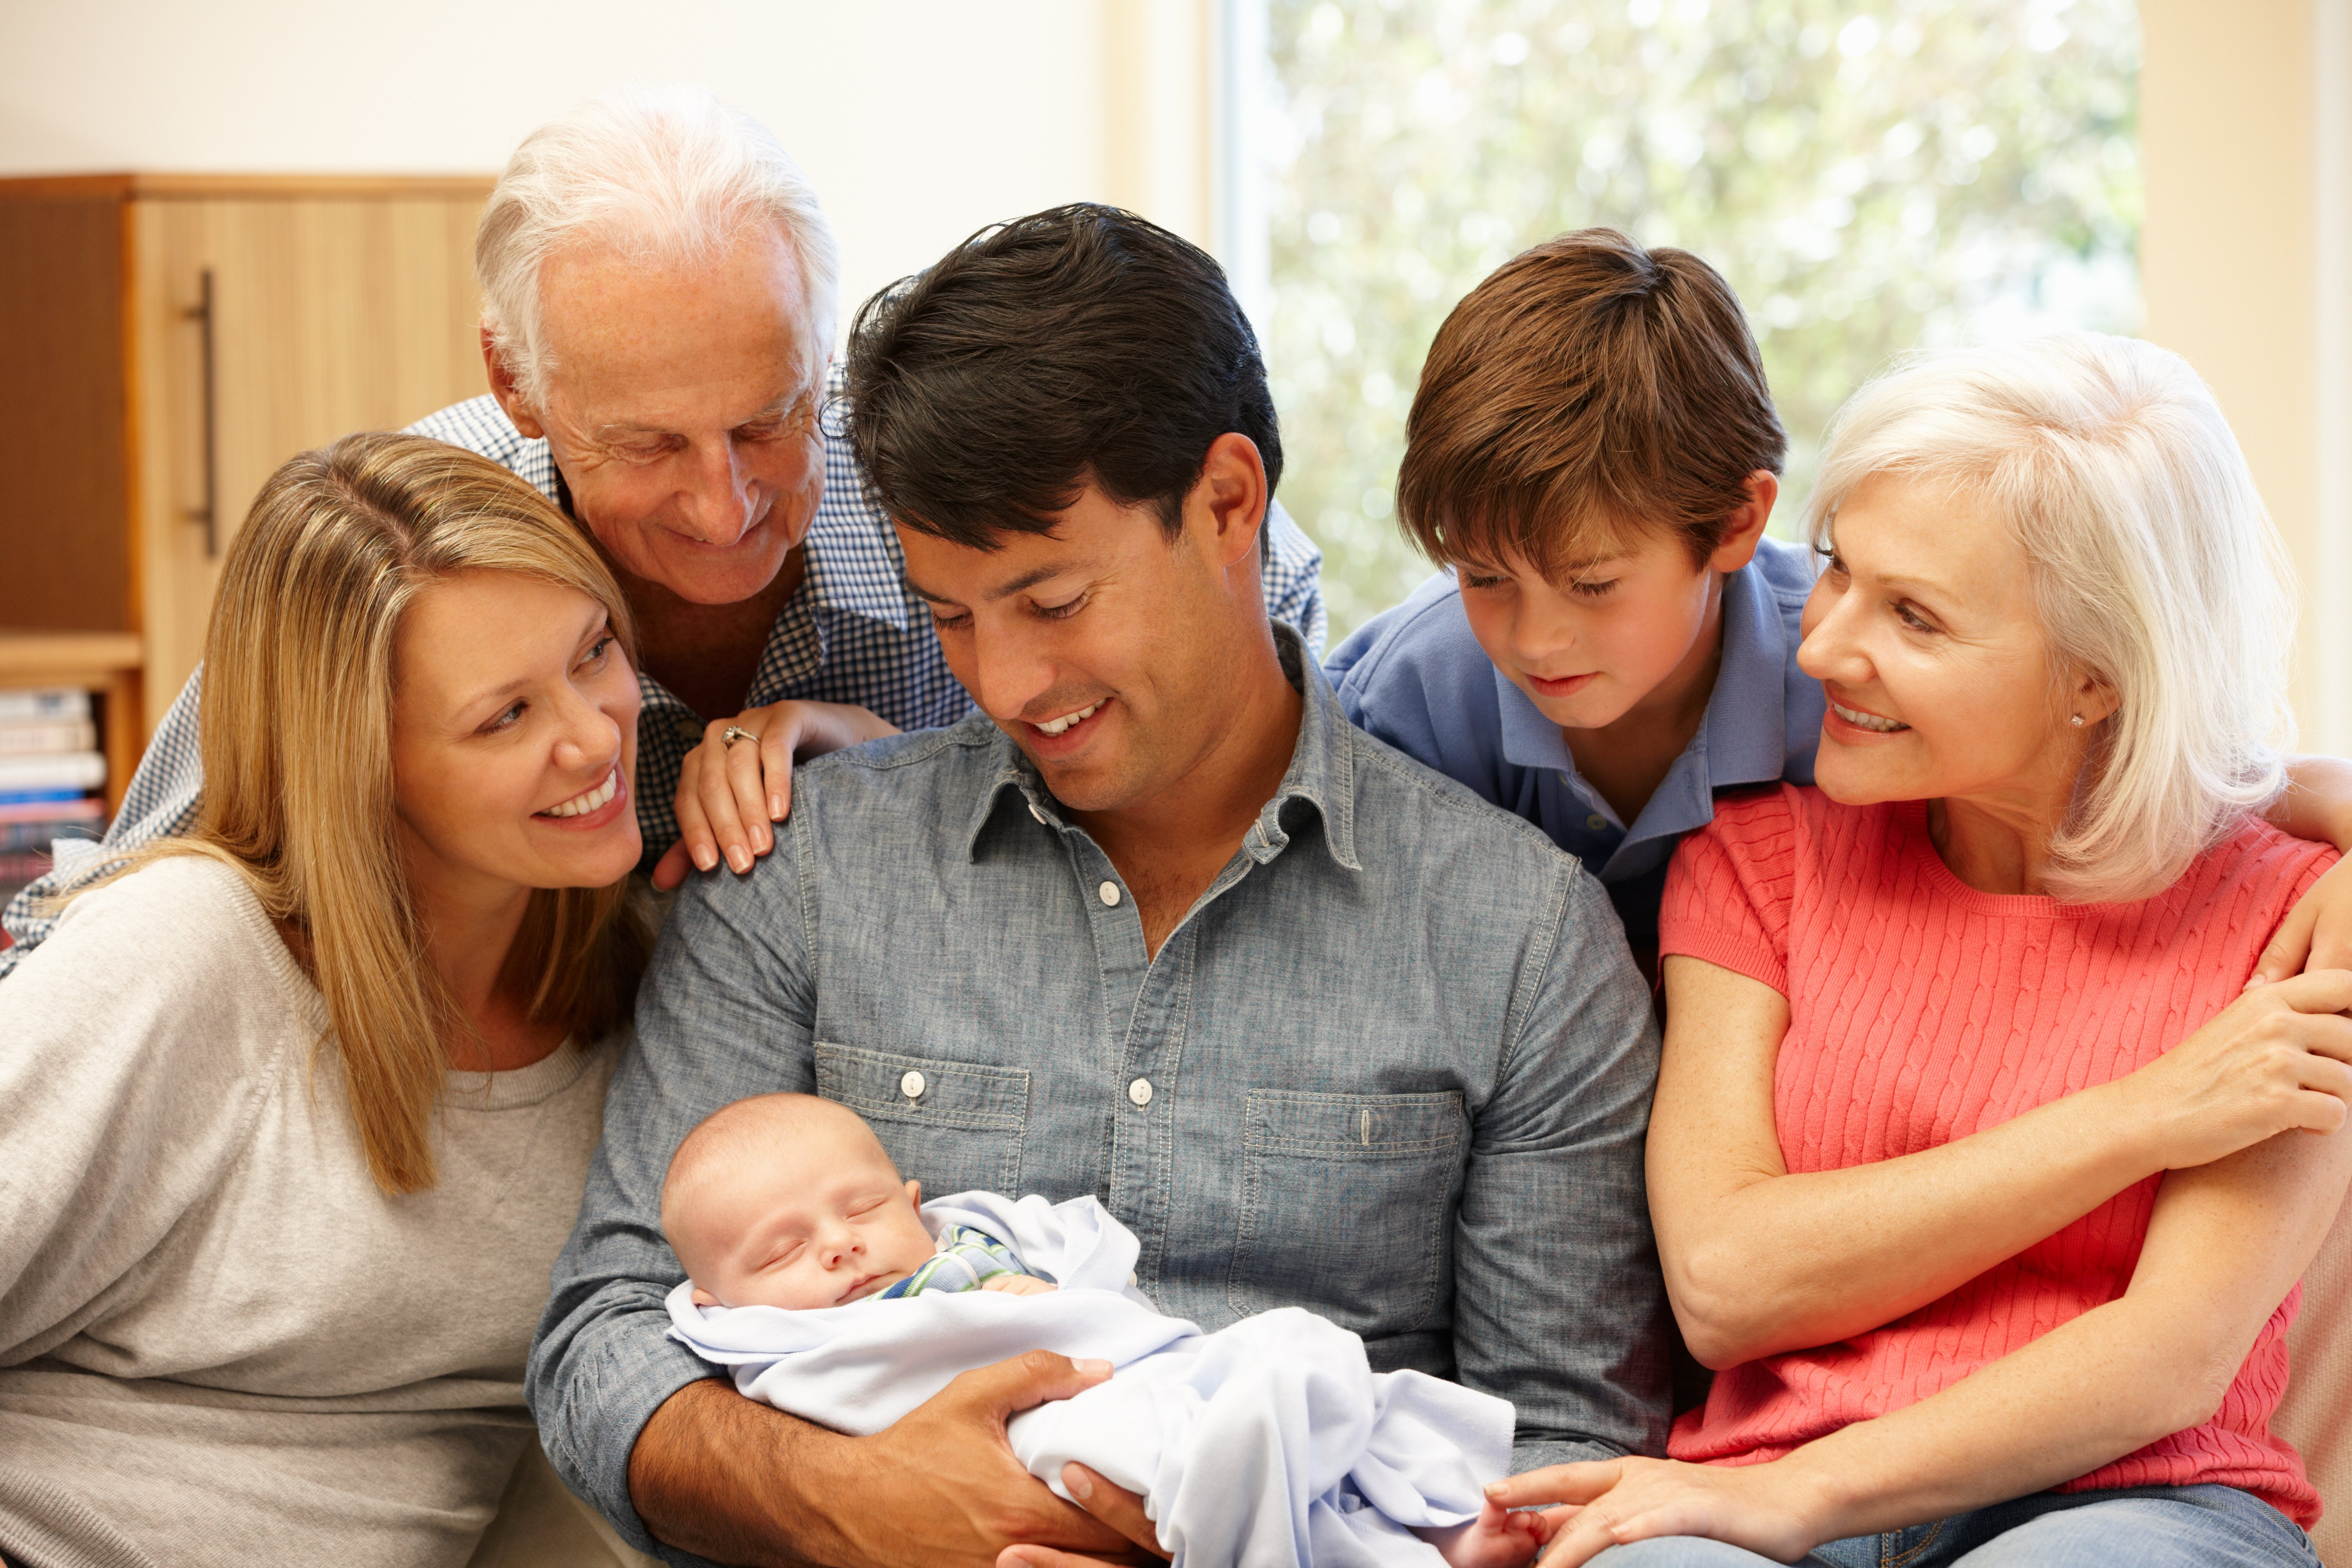 Family-Centered Social Policy